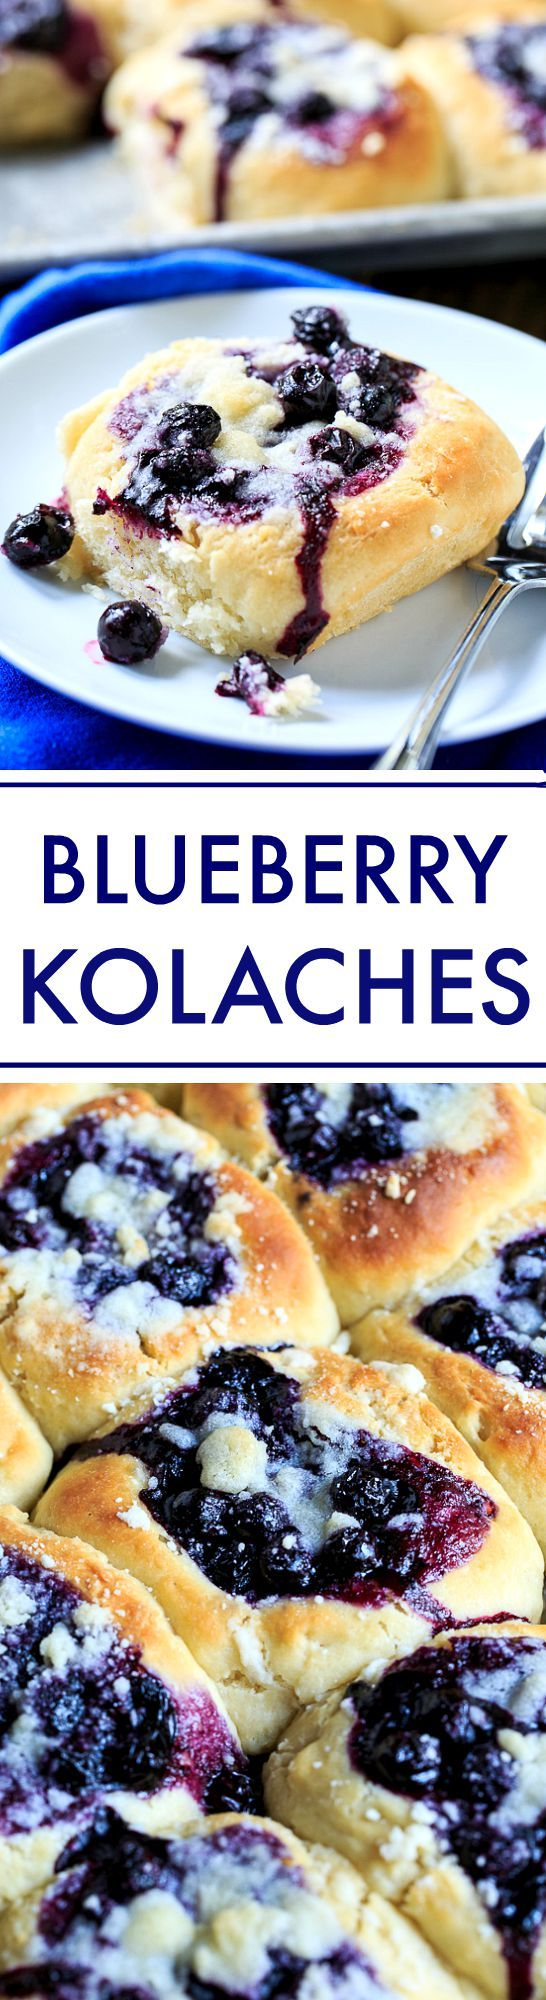 How to make homemade Blueberry Kolaches.